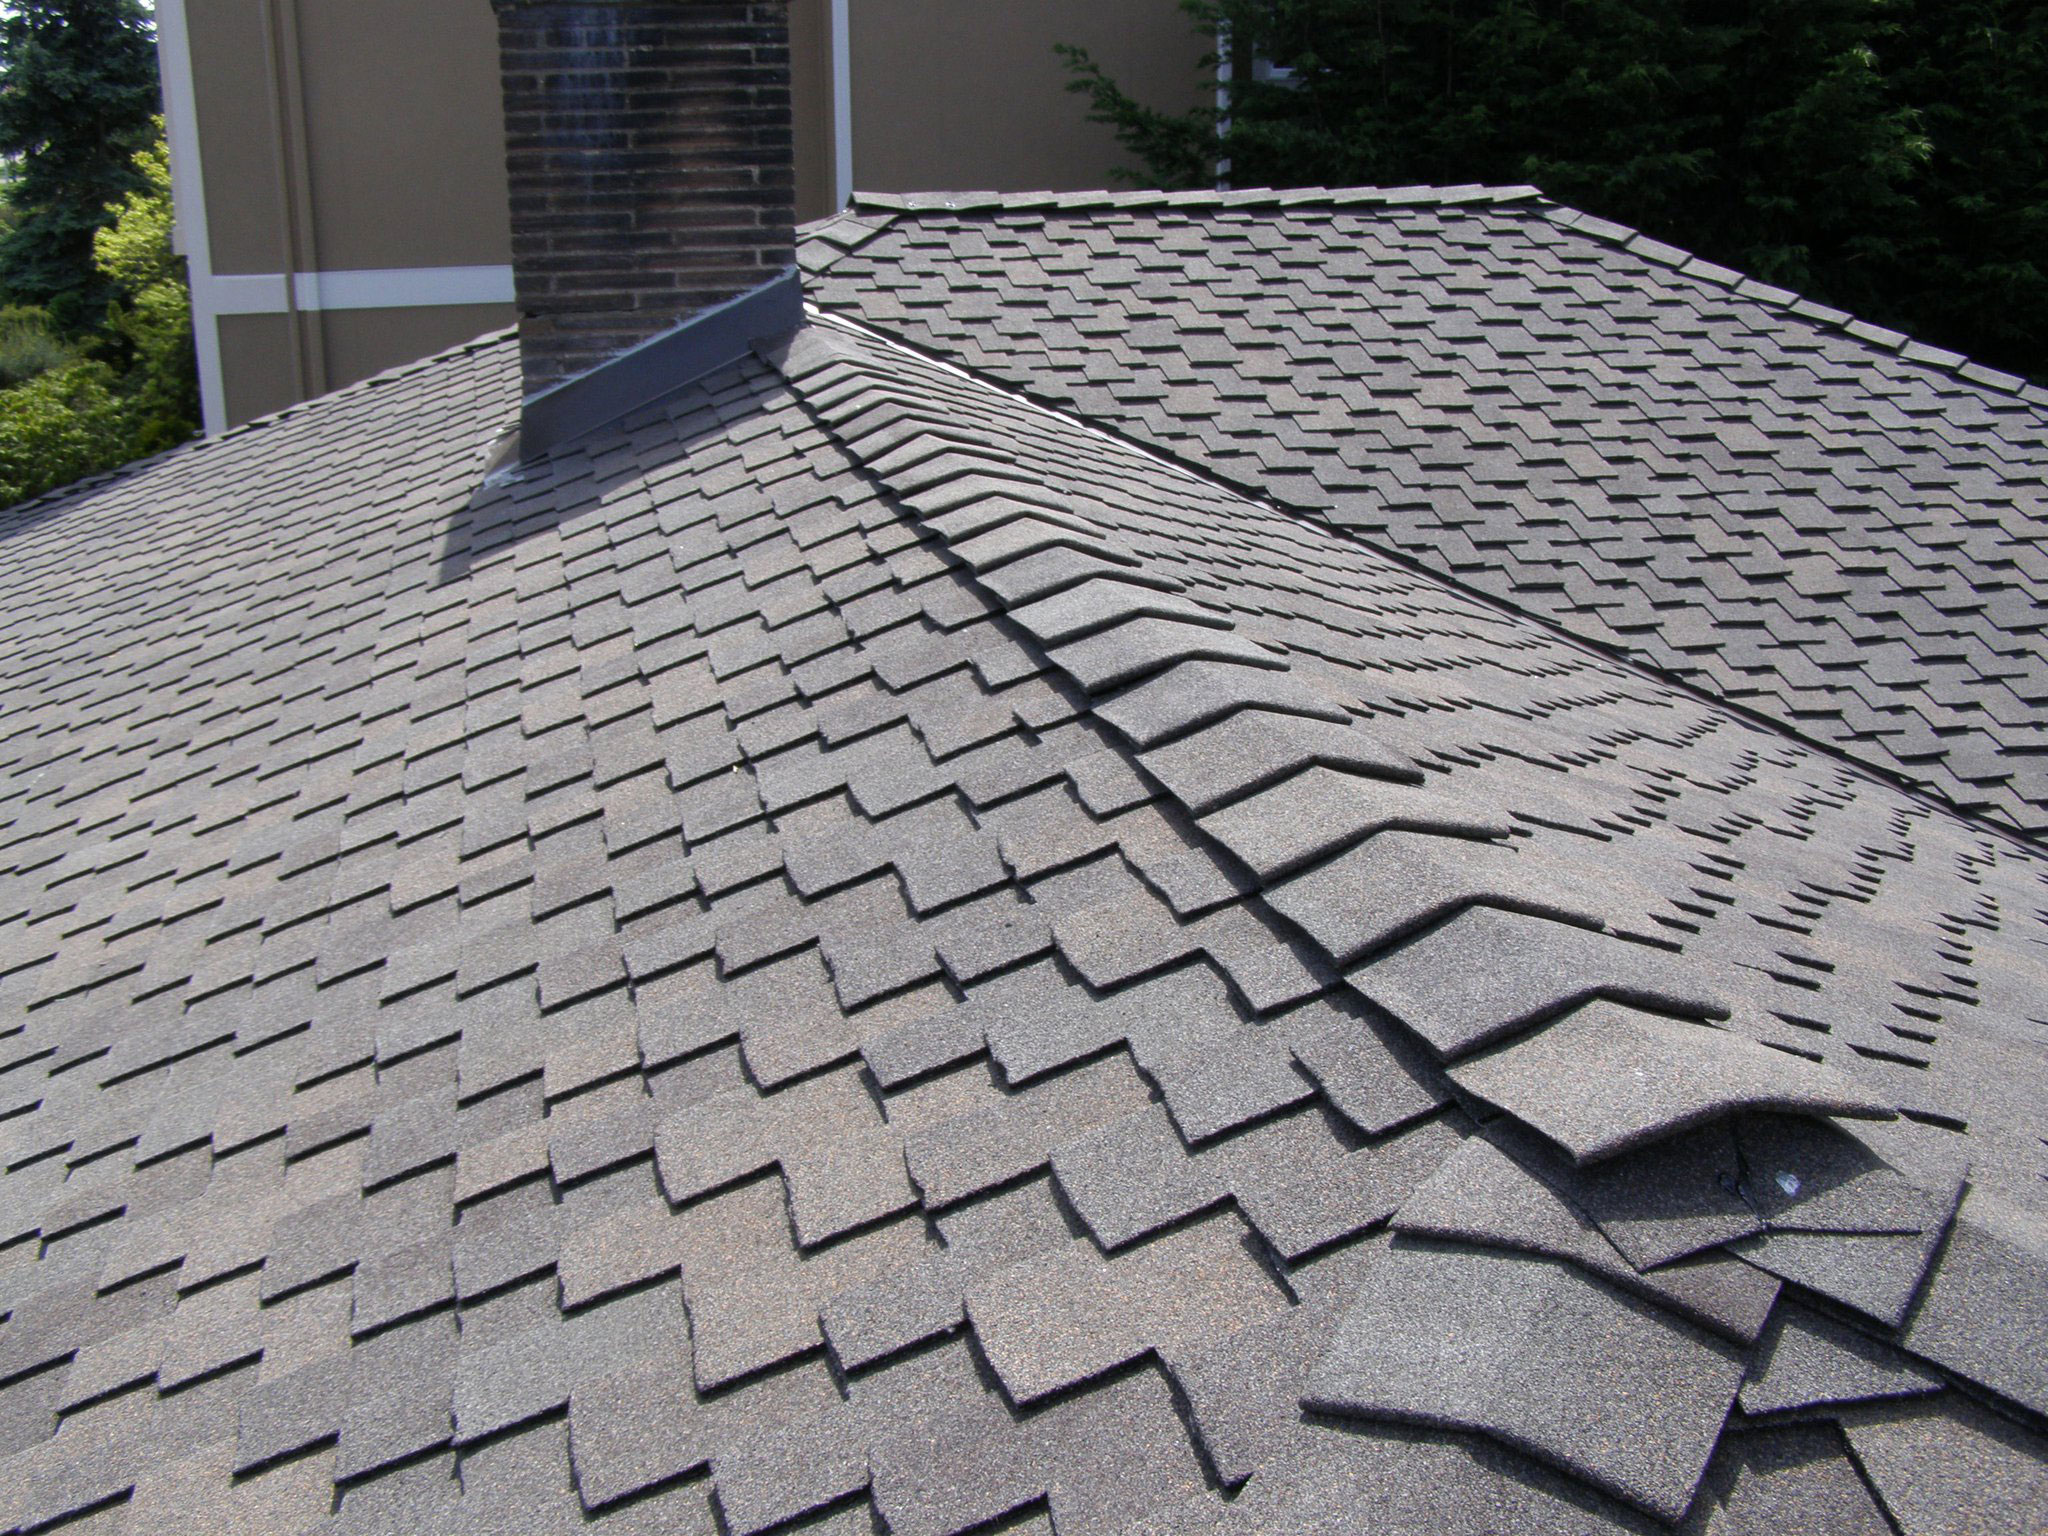 Fairfax roofing fairfax va commercial roofing Composite roofing tiles